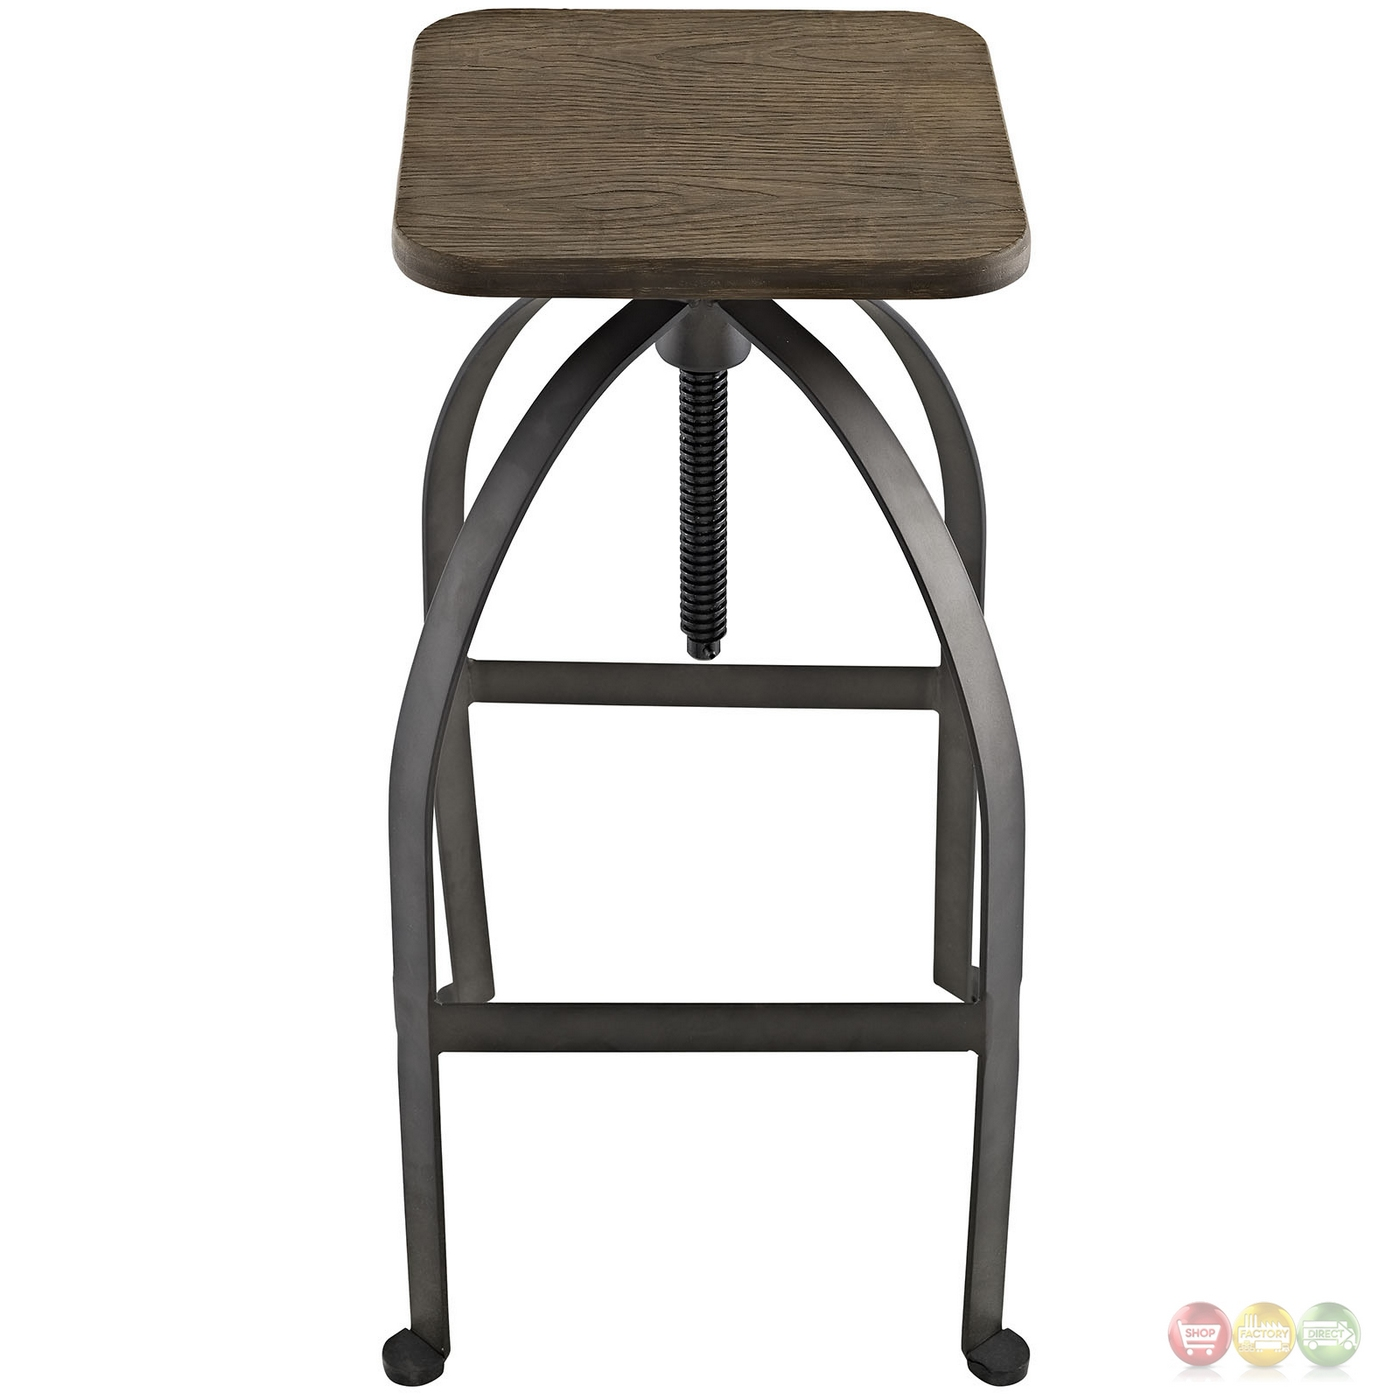 Pointe Rustic Industrial Square Bar Stool With Bamboo Seat